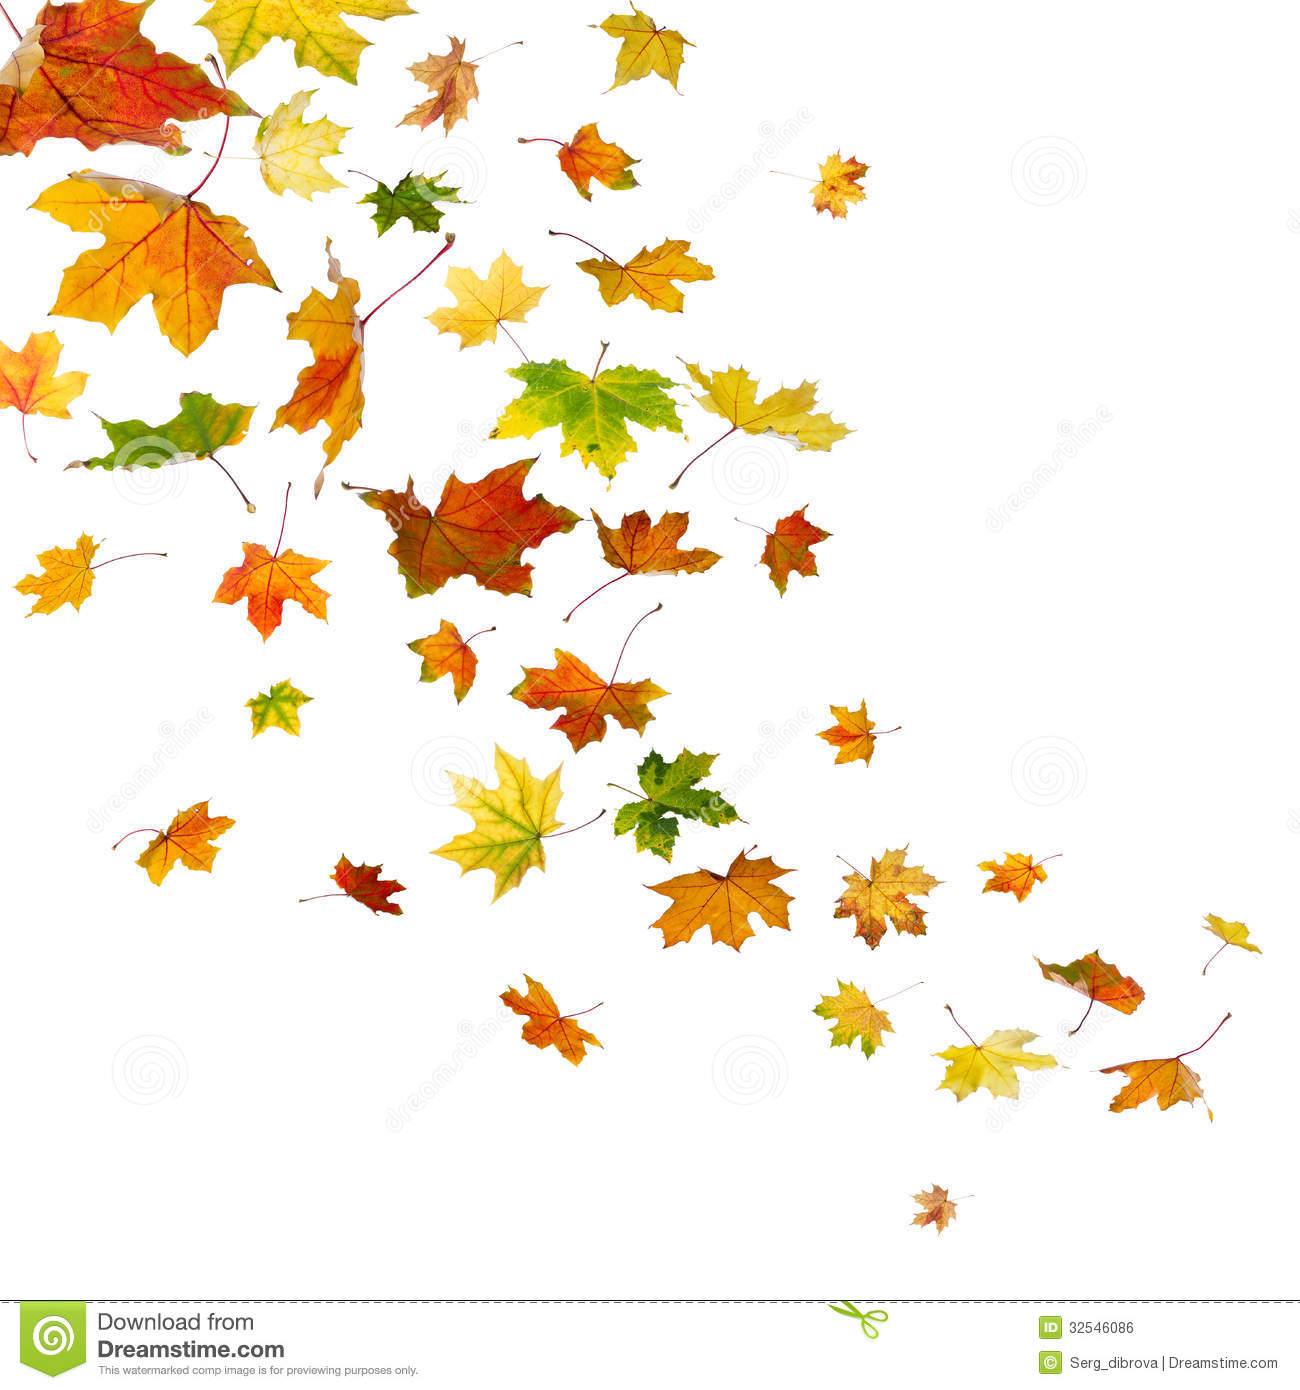 Go Back Images For Animated Falling Leaves Clip Art